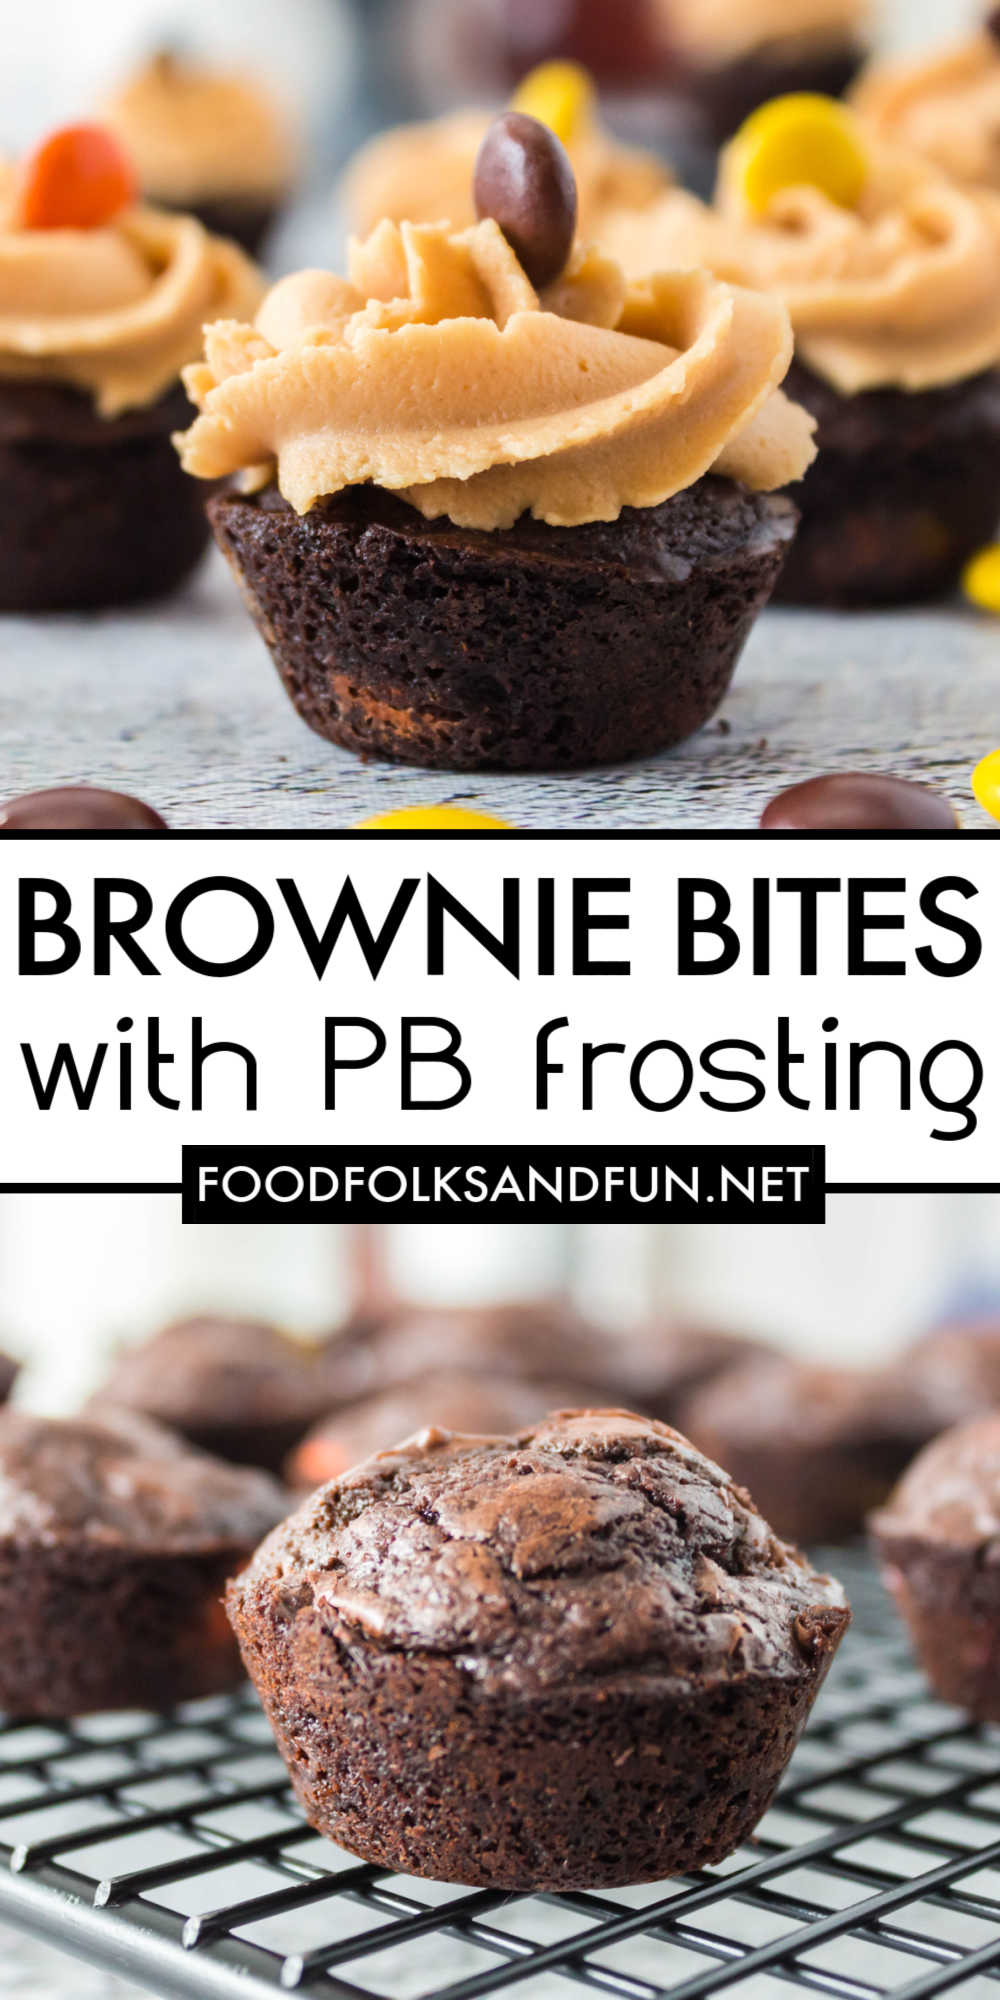 Get your chocolate and peanut butter fix with this mini Brownie Bites recipe with Peanut Butter Frosting. Pantry baking never tasted so good! via @foodfolksandfun